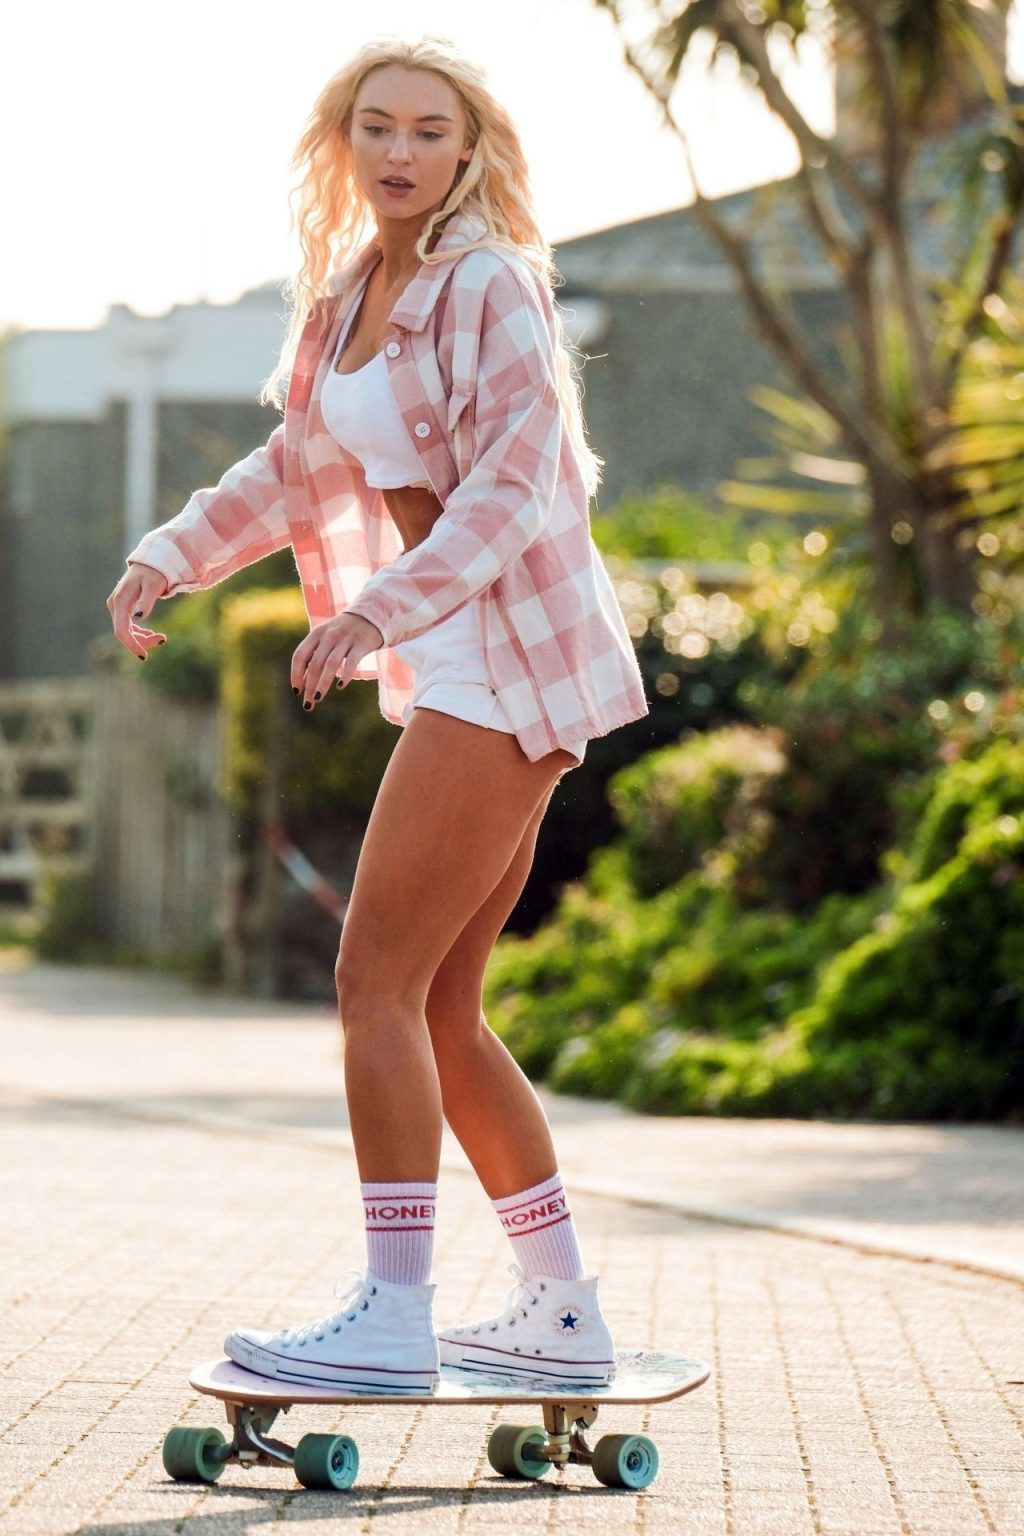 Lucie Donlan Glides Down the Streets of Newquay on Her Skateboard (16 Photos)